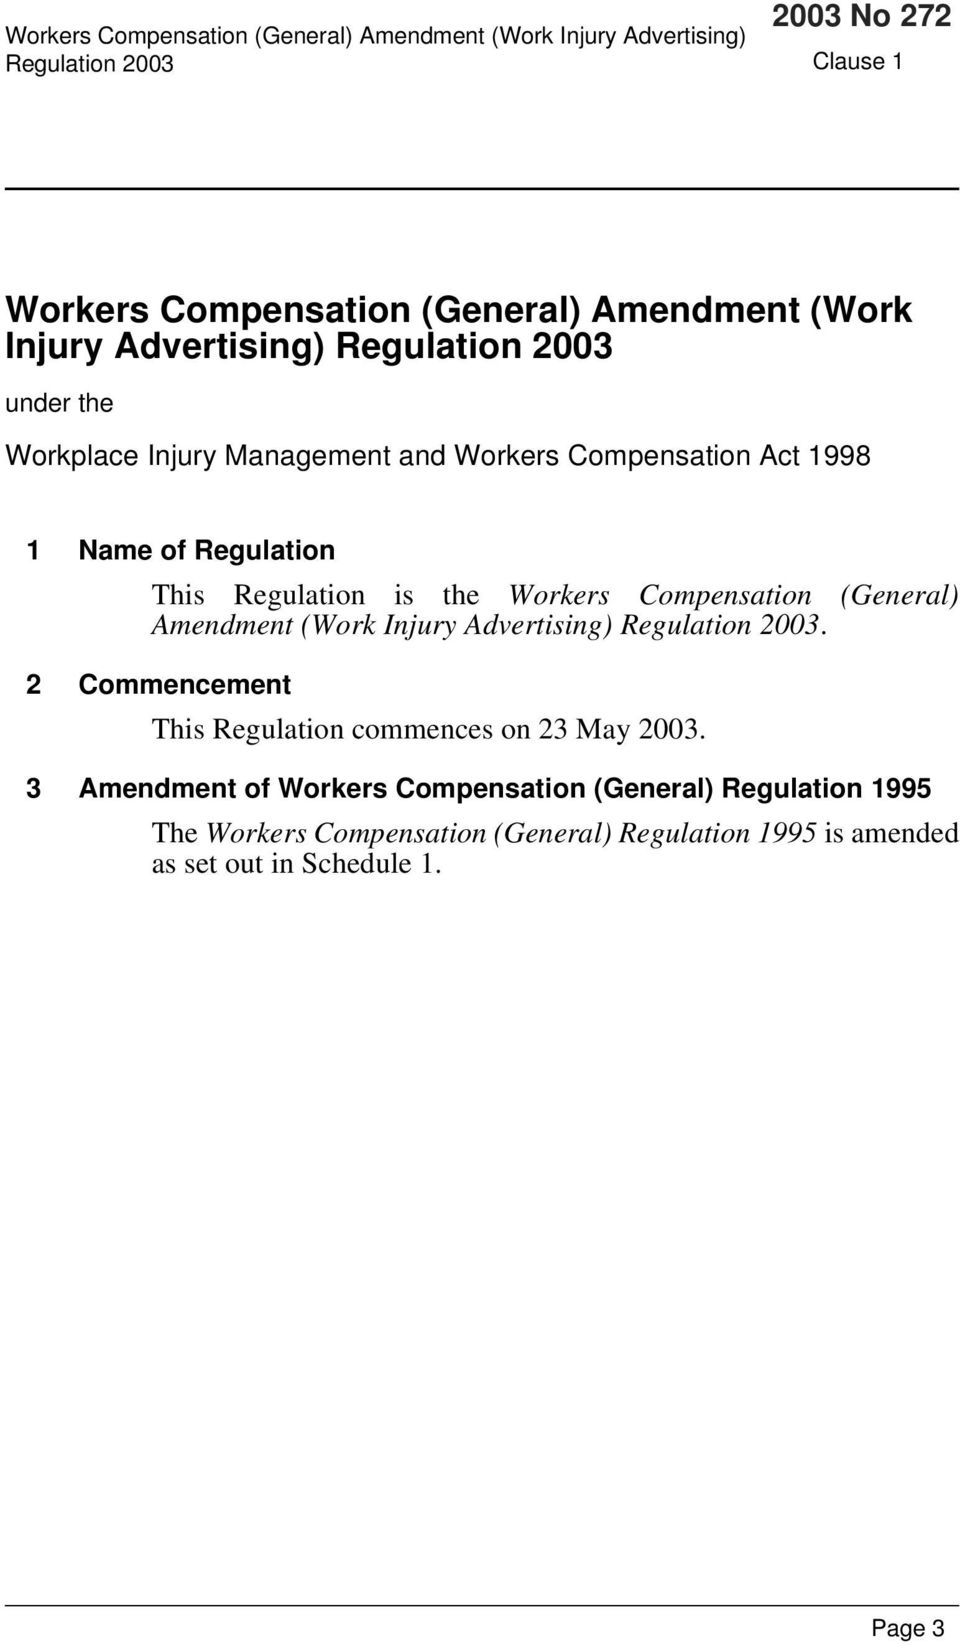 Workers Compensation (General) Amendment (Work Injury Advertising). 2 Commencement This Regulation commences on 23 May 2003.